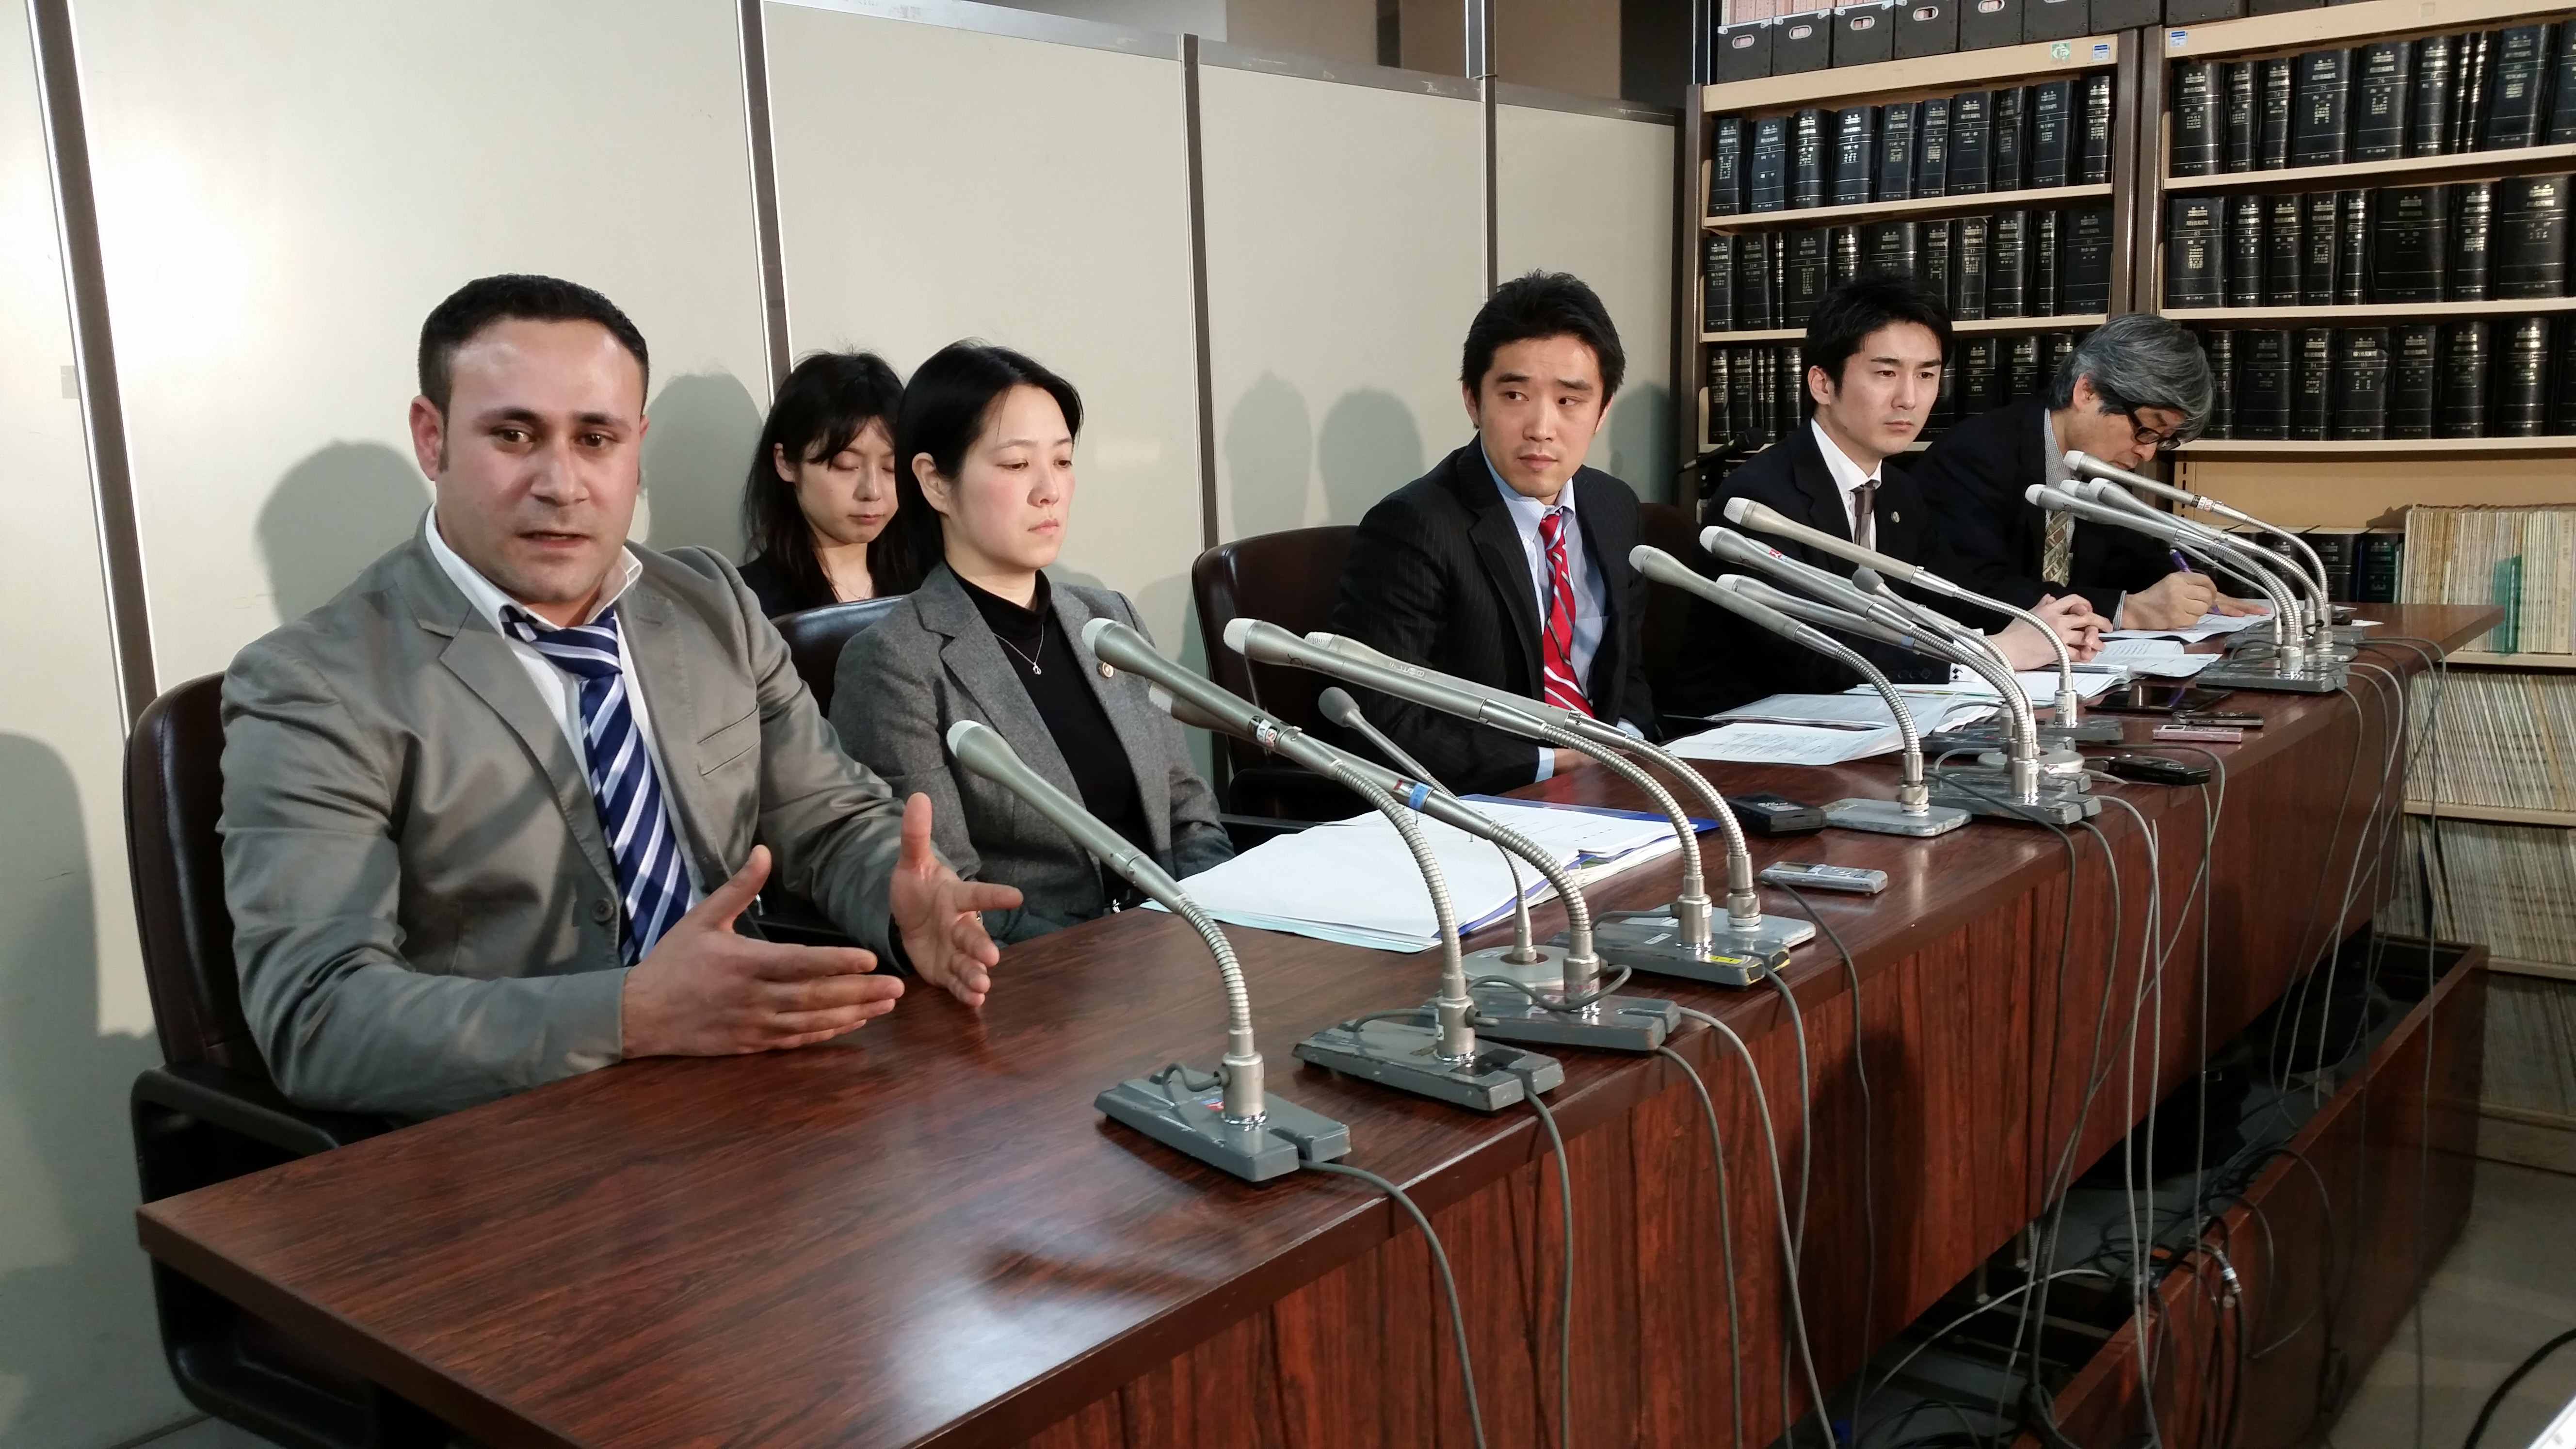 Syrian Joude Youssef (left) pleads for refugee status in Tokyo on Tuesday. He is one of four asylum seekers who arrived in 2012 and are now suing the government over their rejected applications.   TOMOHIRO OSAKI